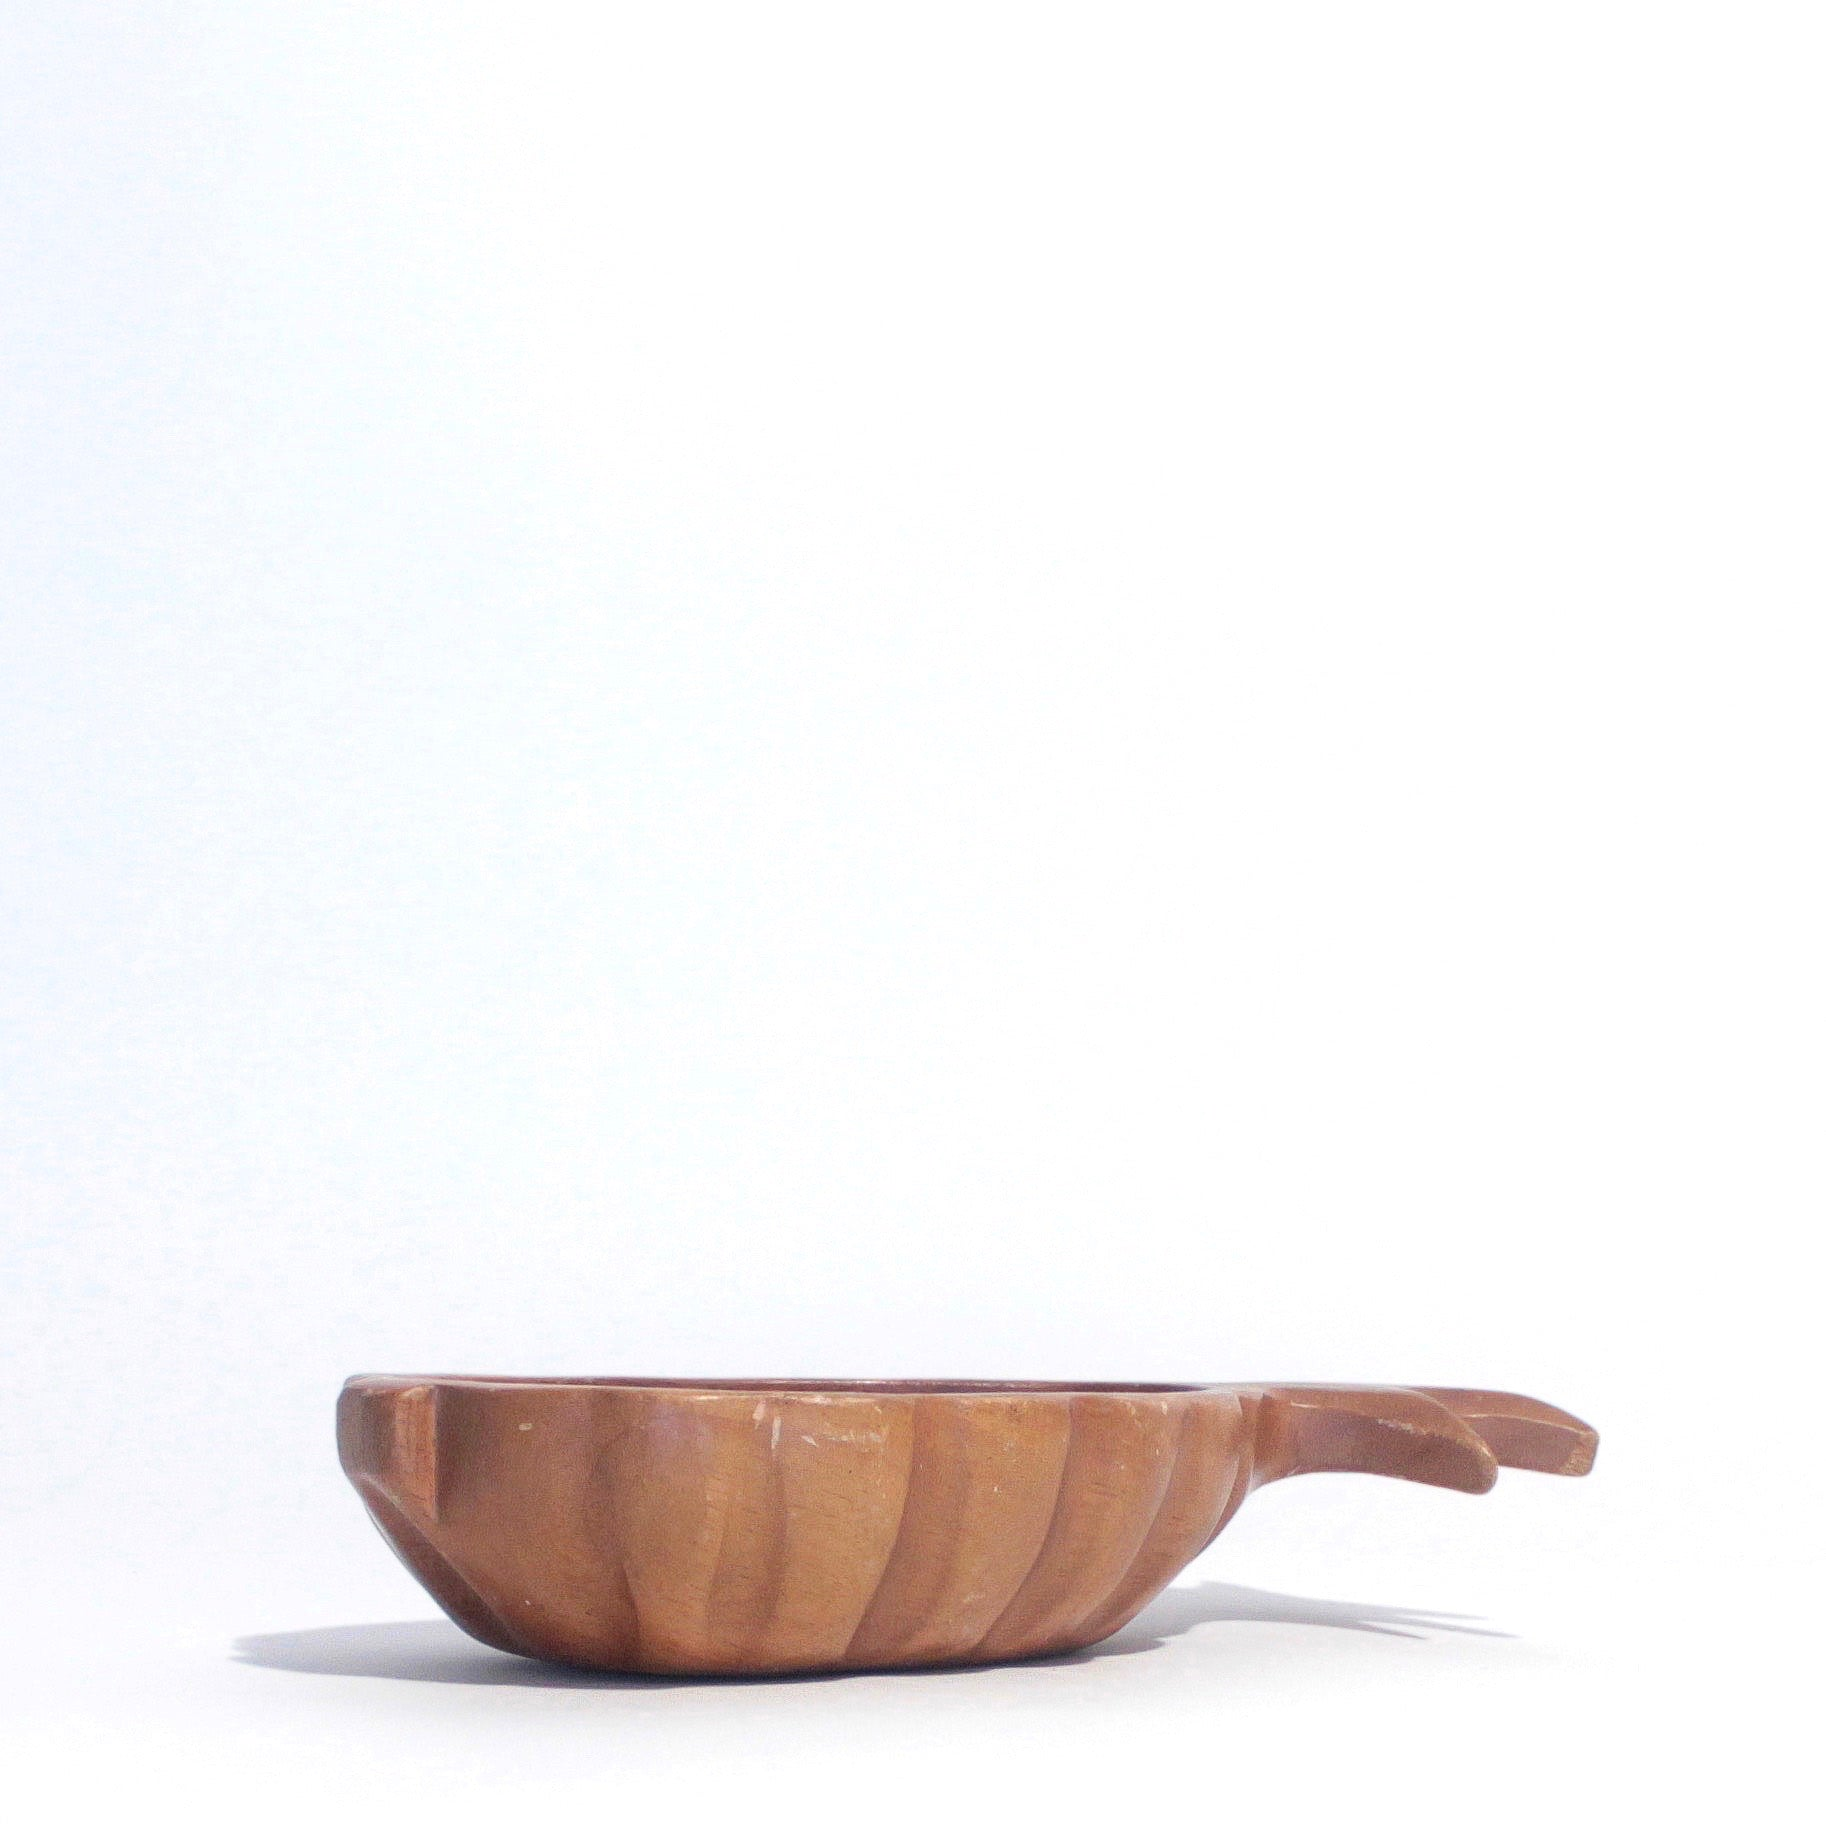 Pineapple Wooden Bowl